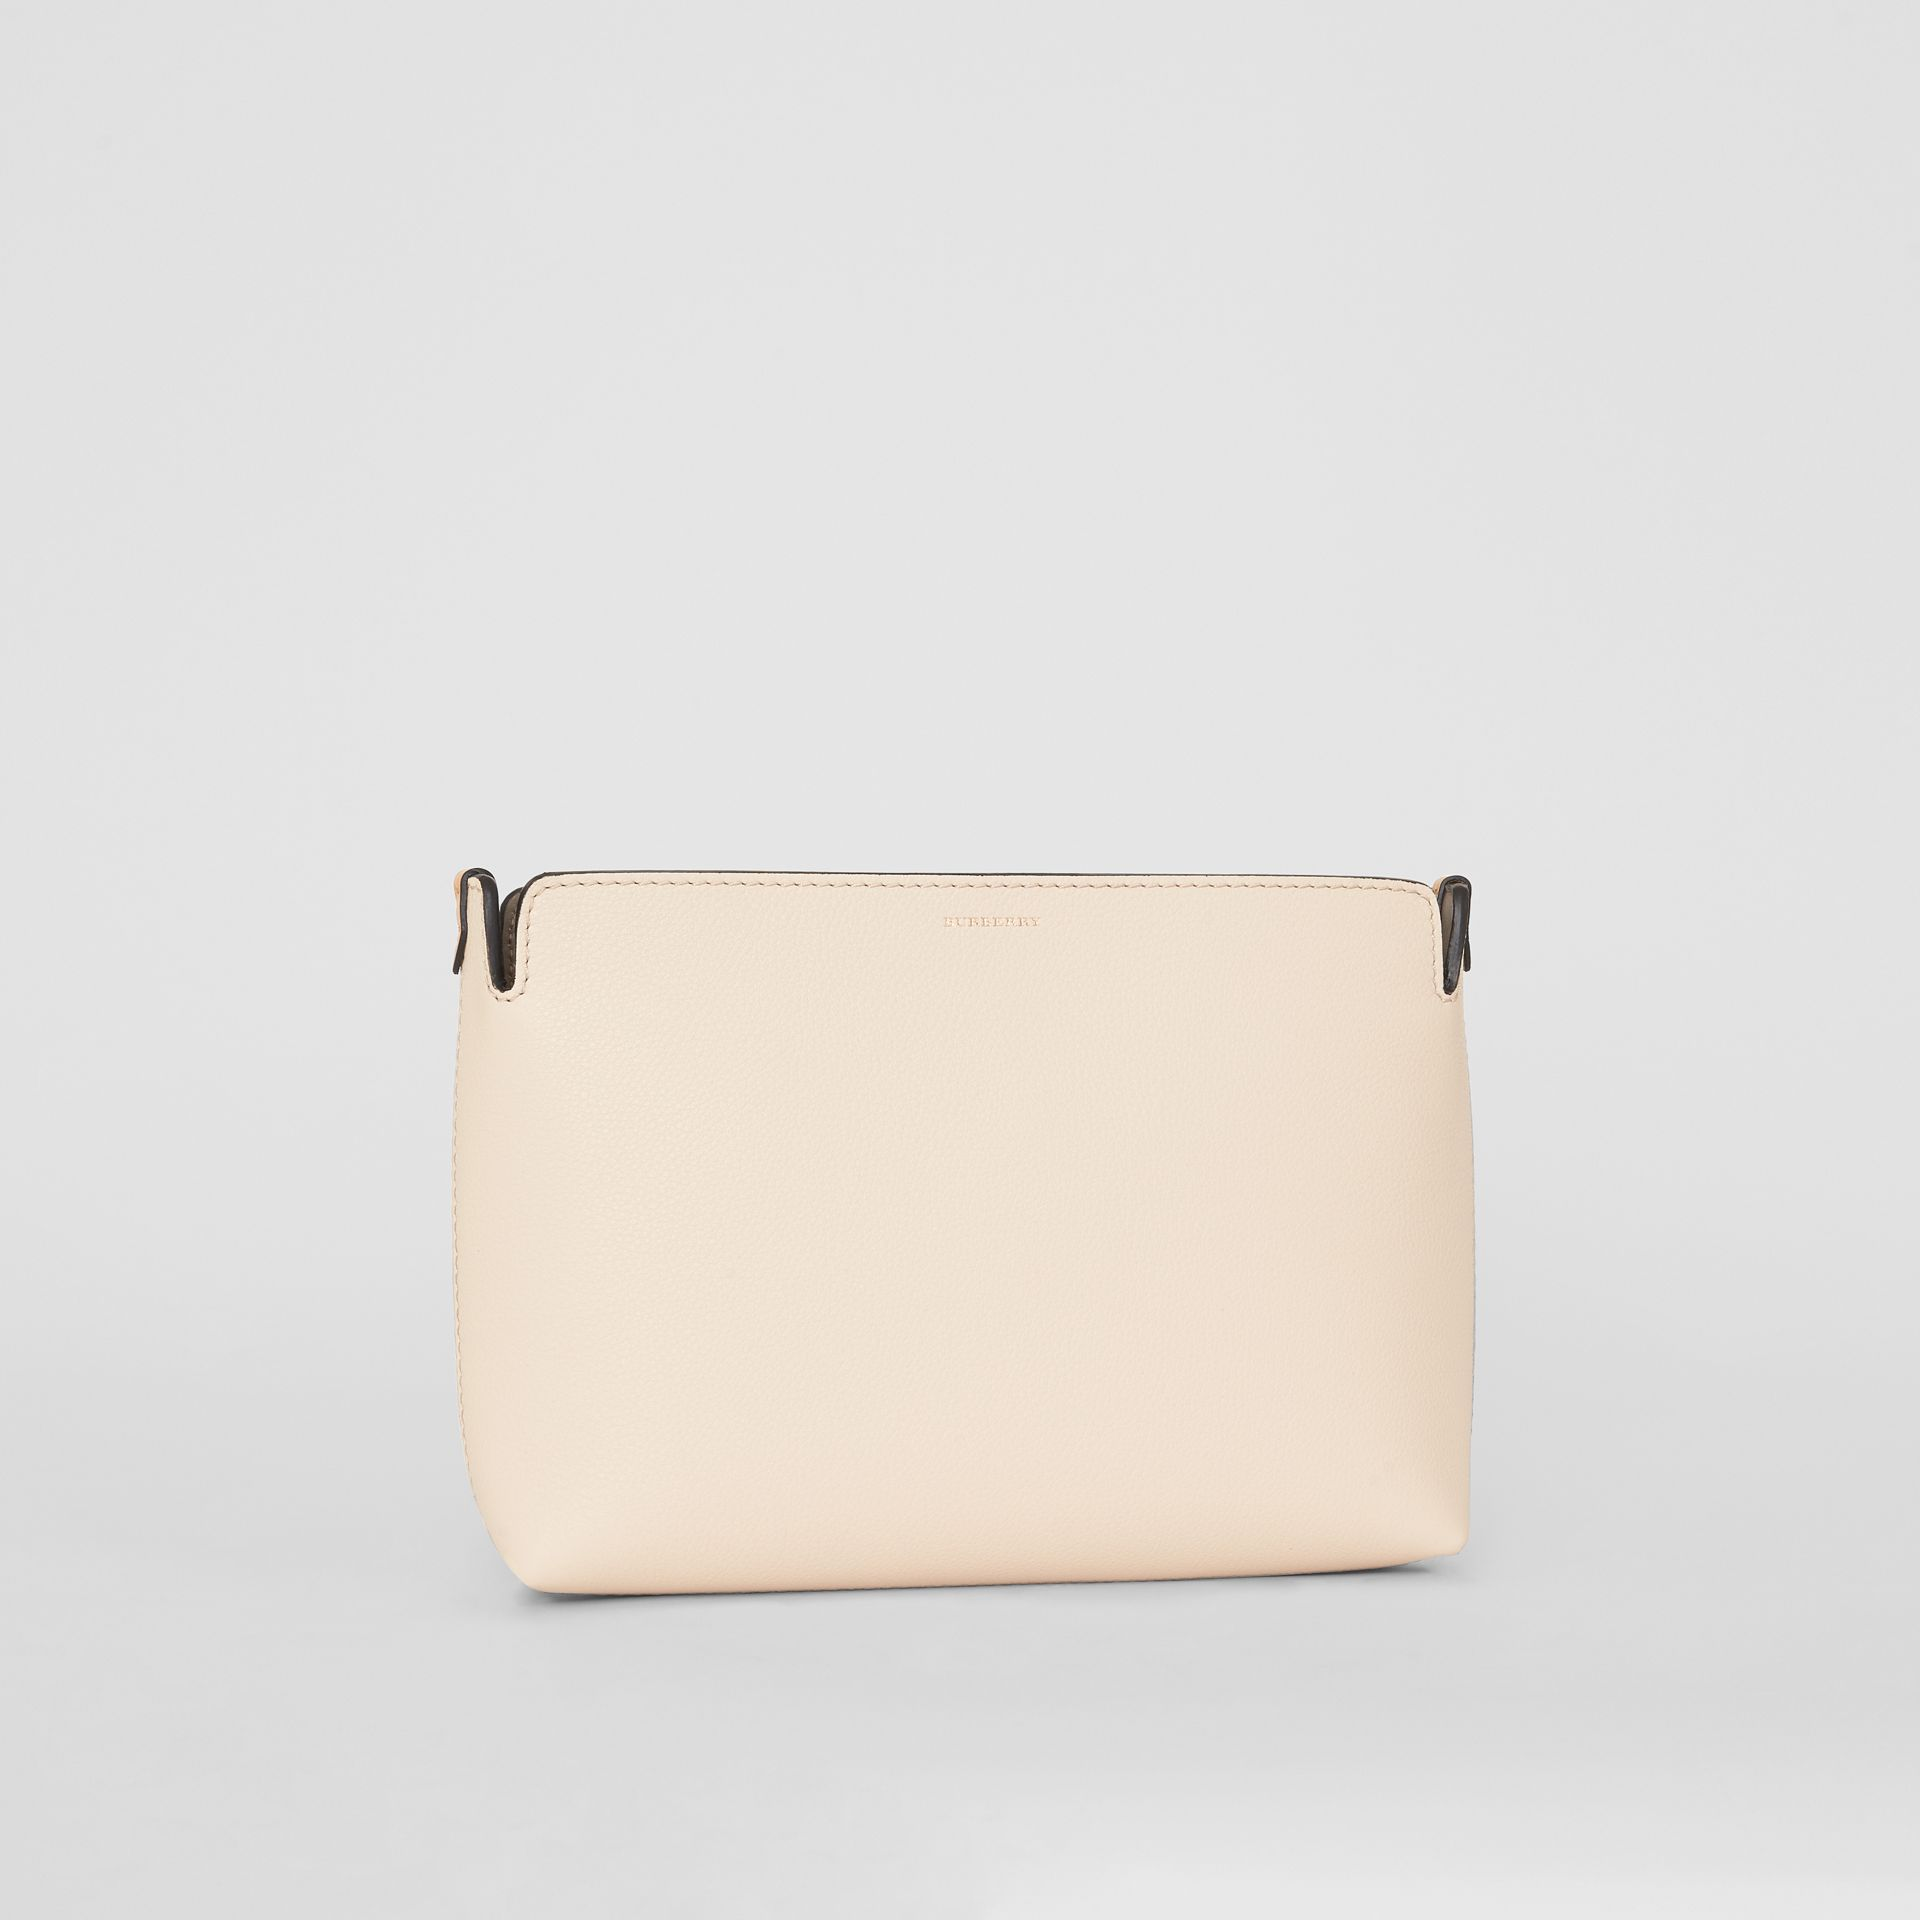 Medium Tri-tone Leather Clutch in Limestone/cornflower Yellow - Women | Burberry - gallery image 4